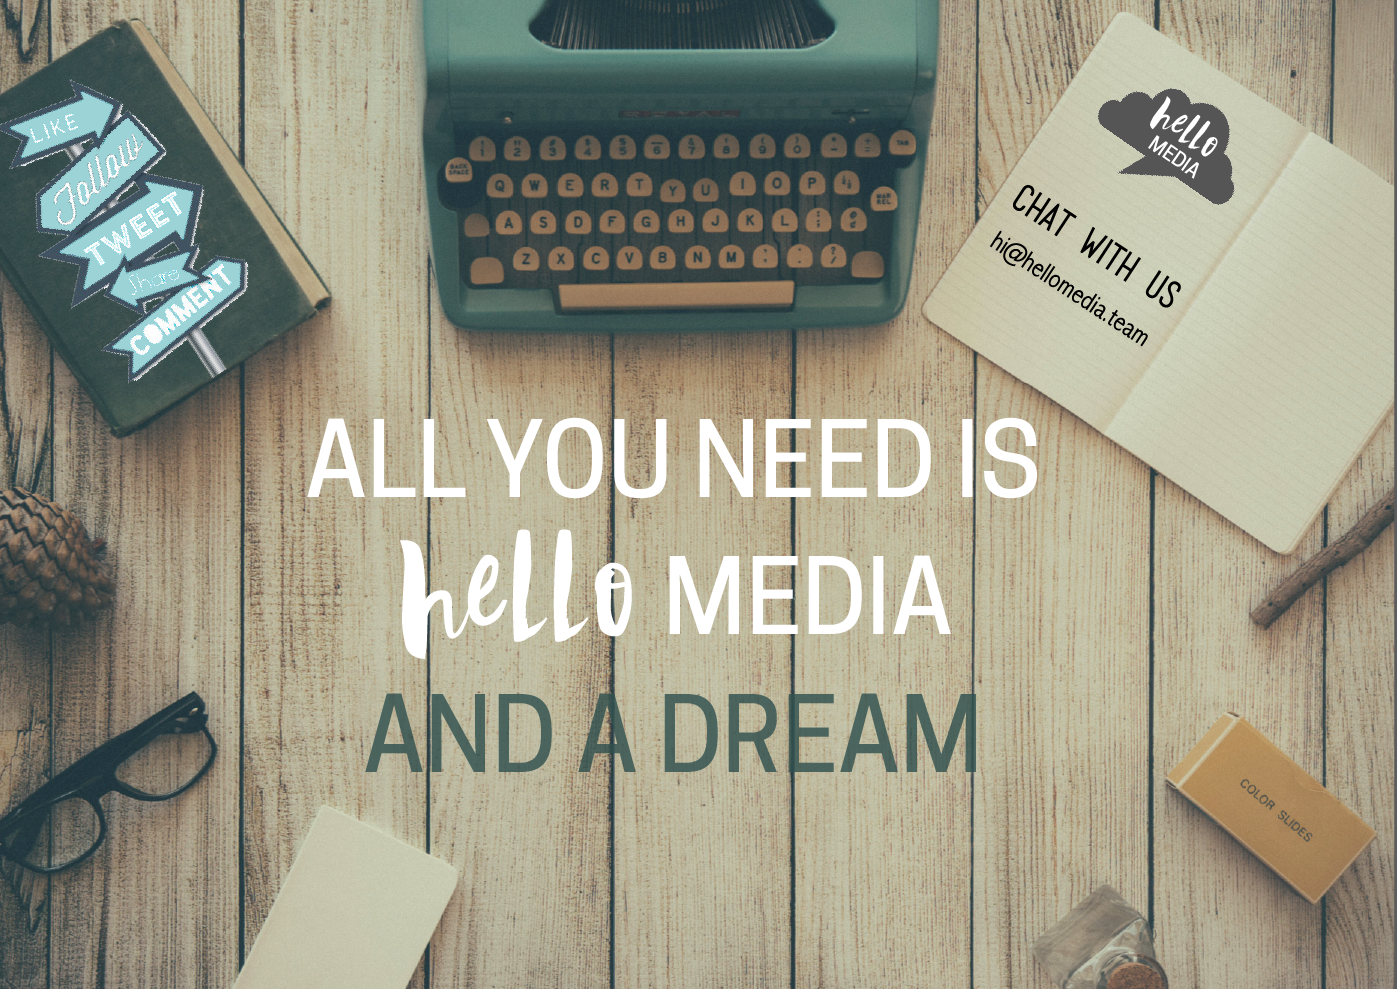 All you need is hello media and a dream to help your business grow